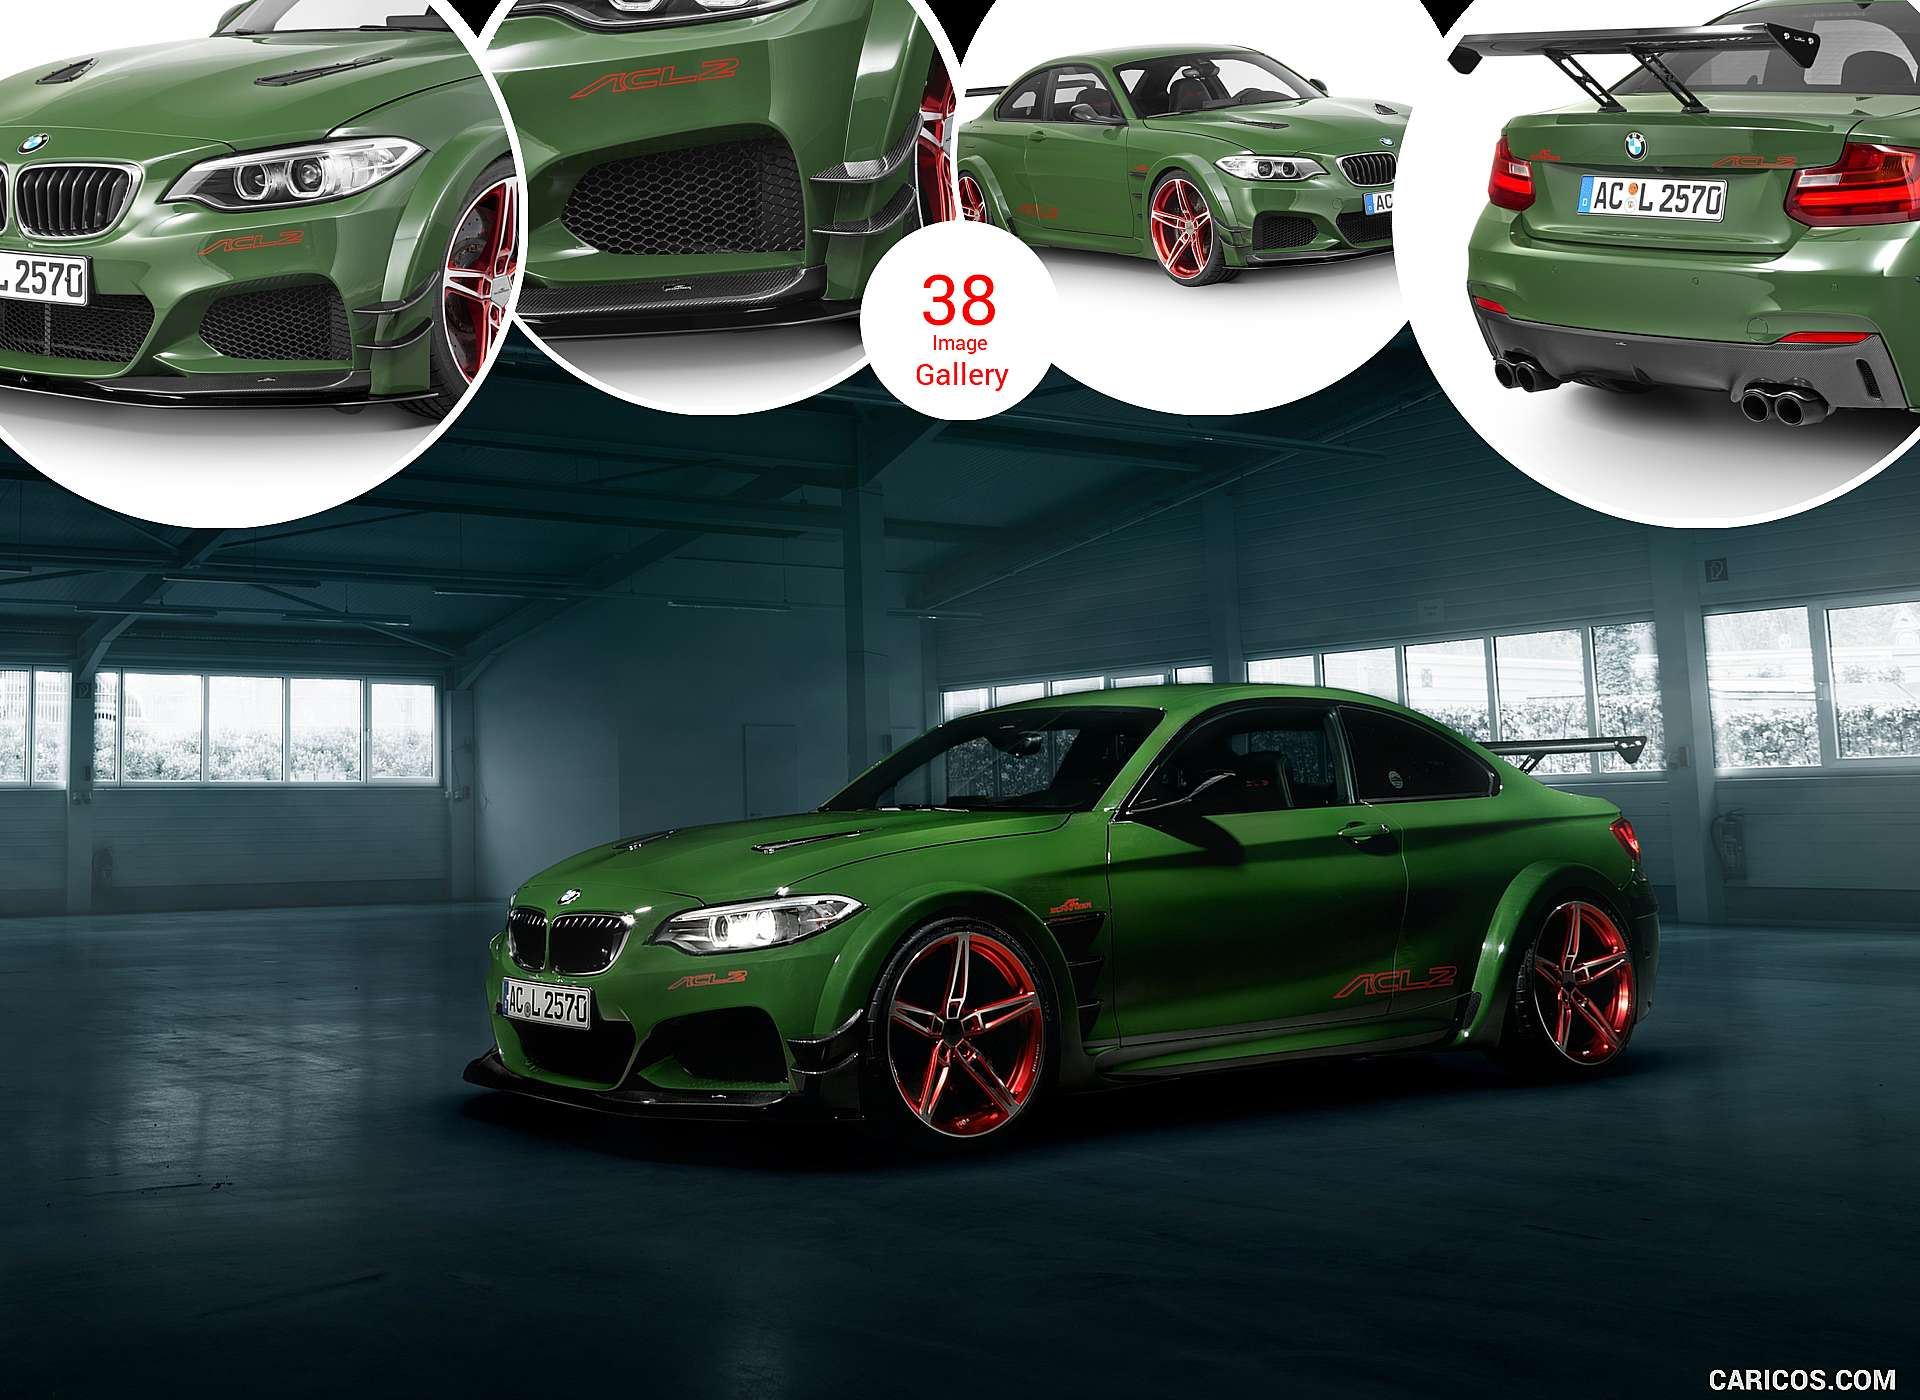 2016 AC Schnitzer ACL2 Concept based on the BMW M 235i